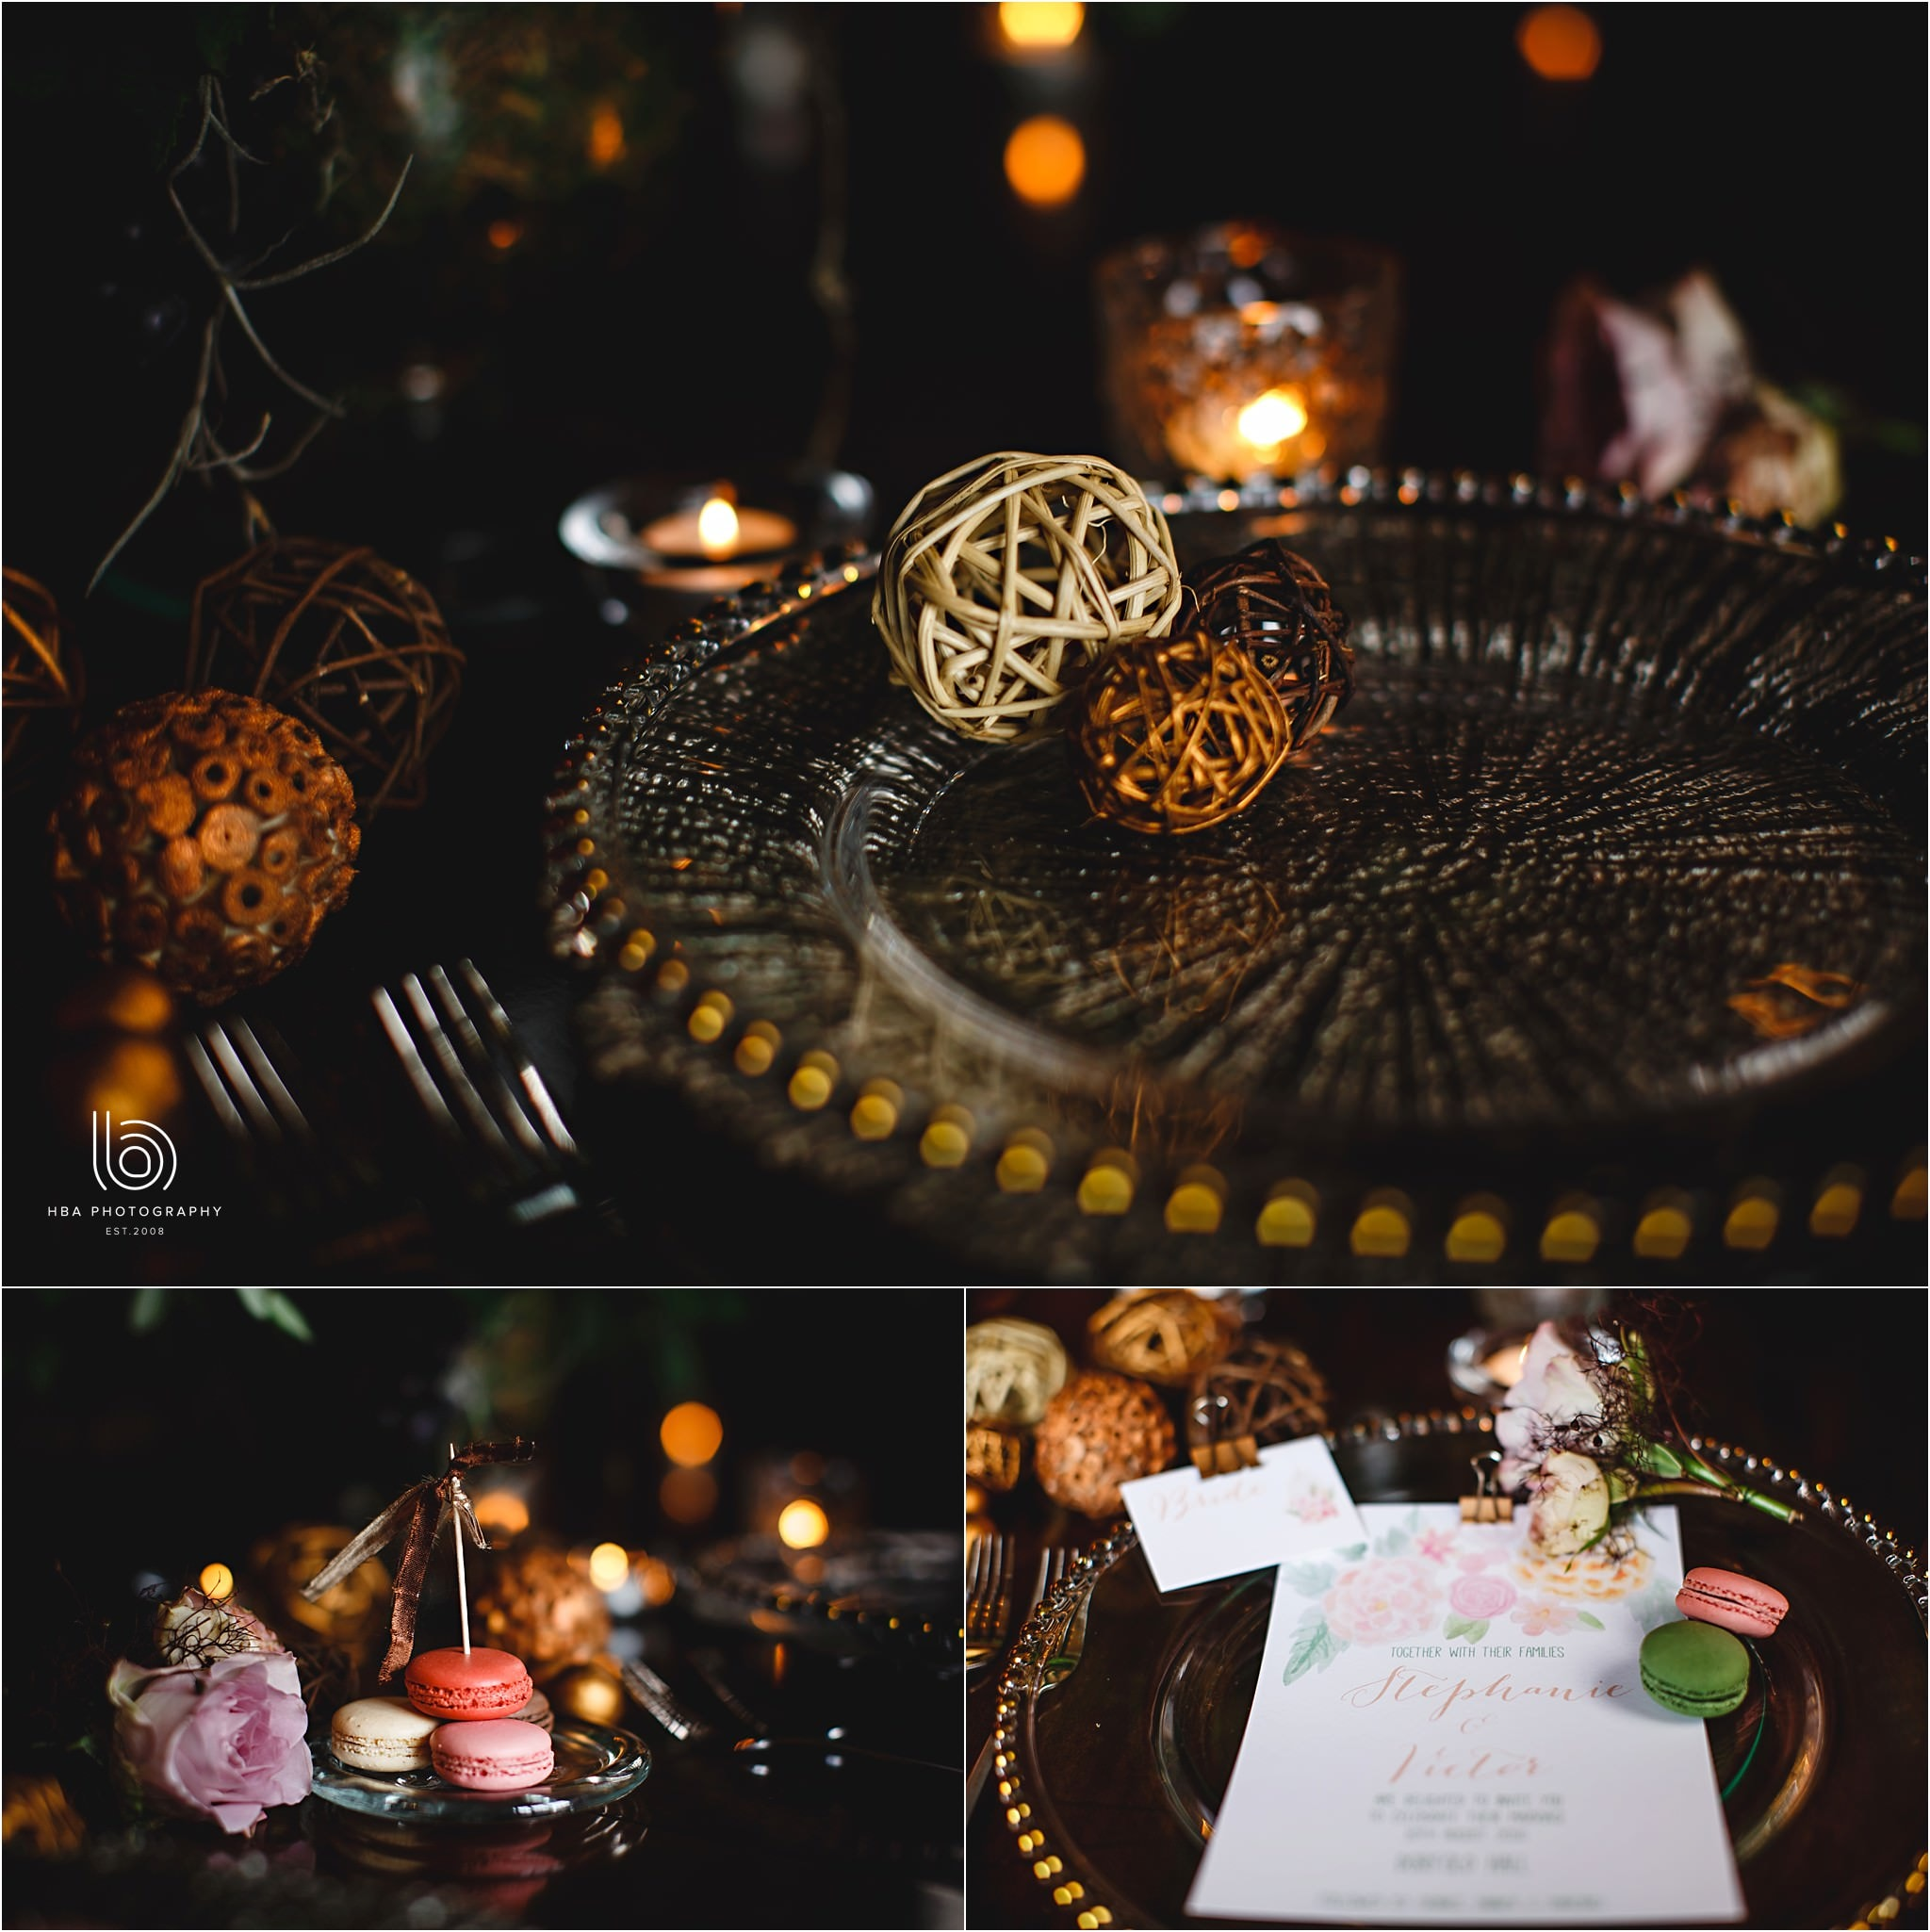 the bronze table decorations